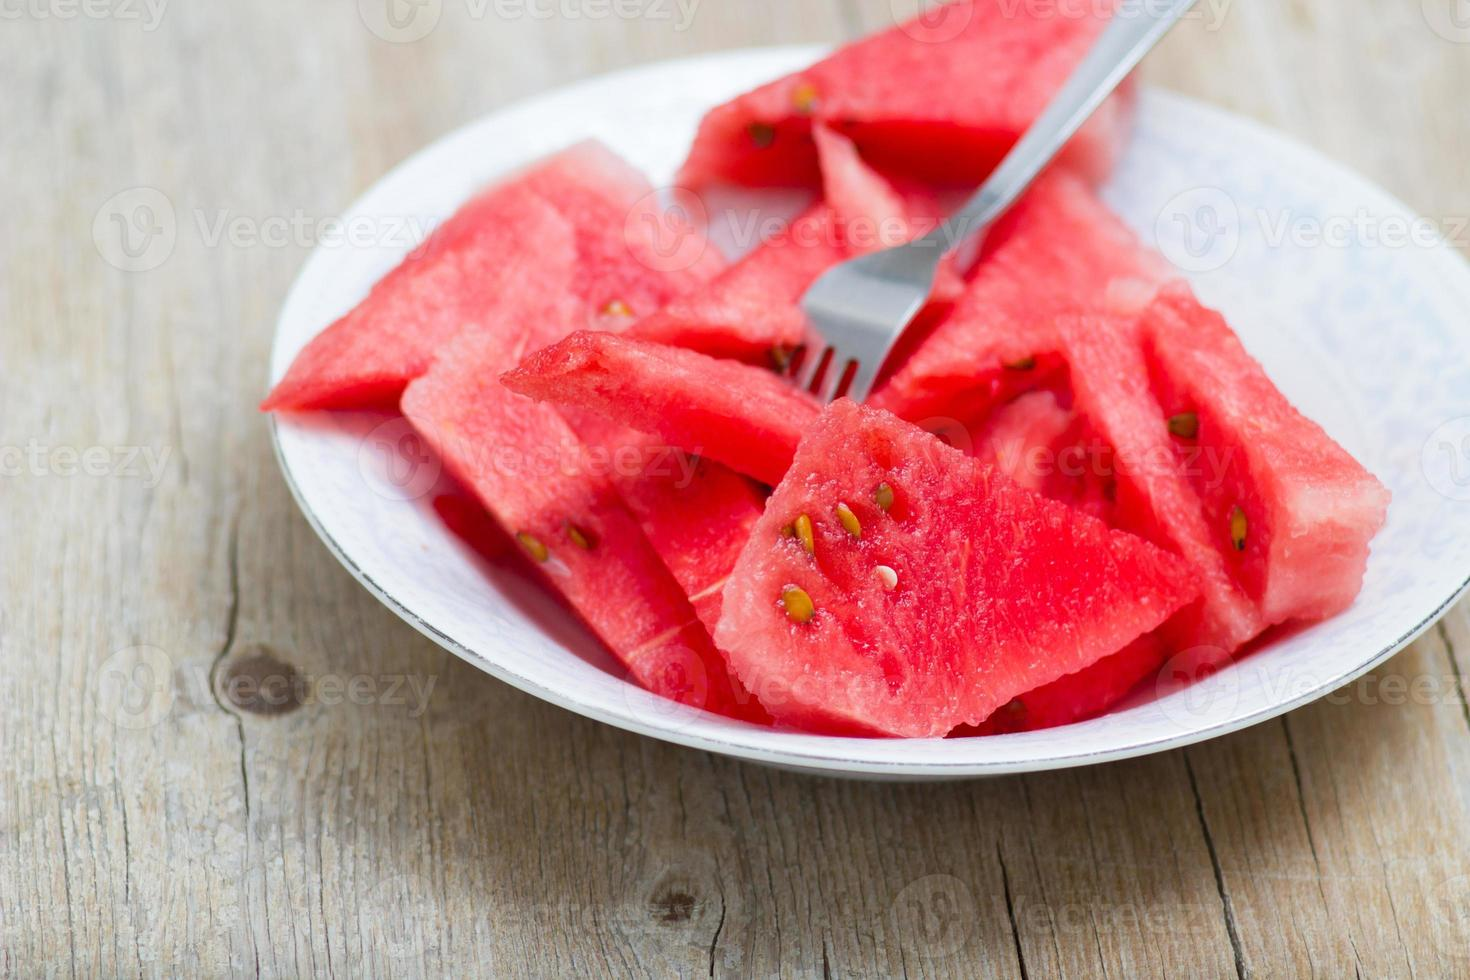 Watermelon slices in a plate photo